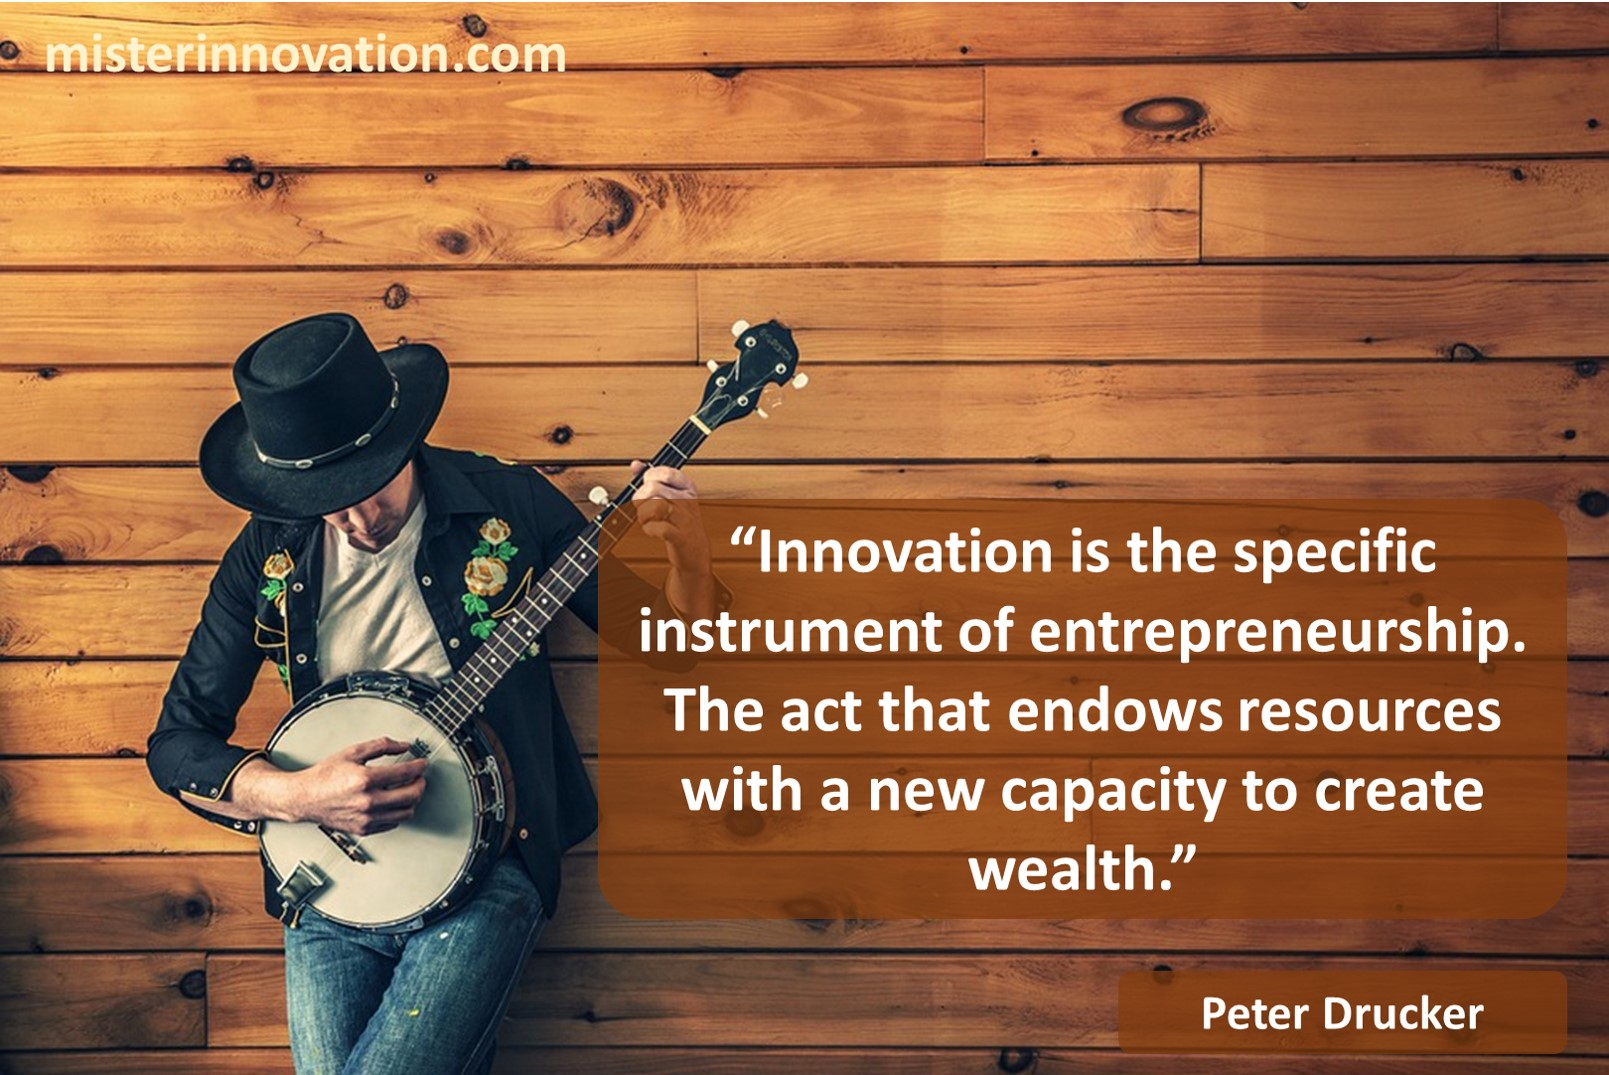 Peter Drucker Quote on Innovation Entrepreneurship and Wealth Creation